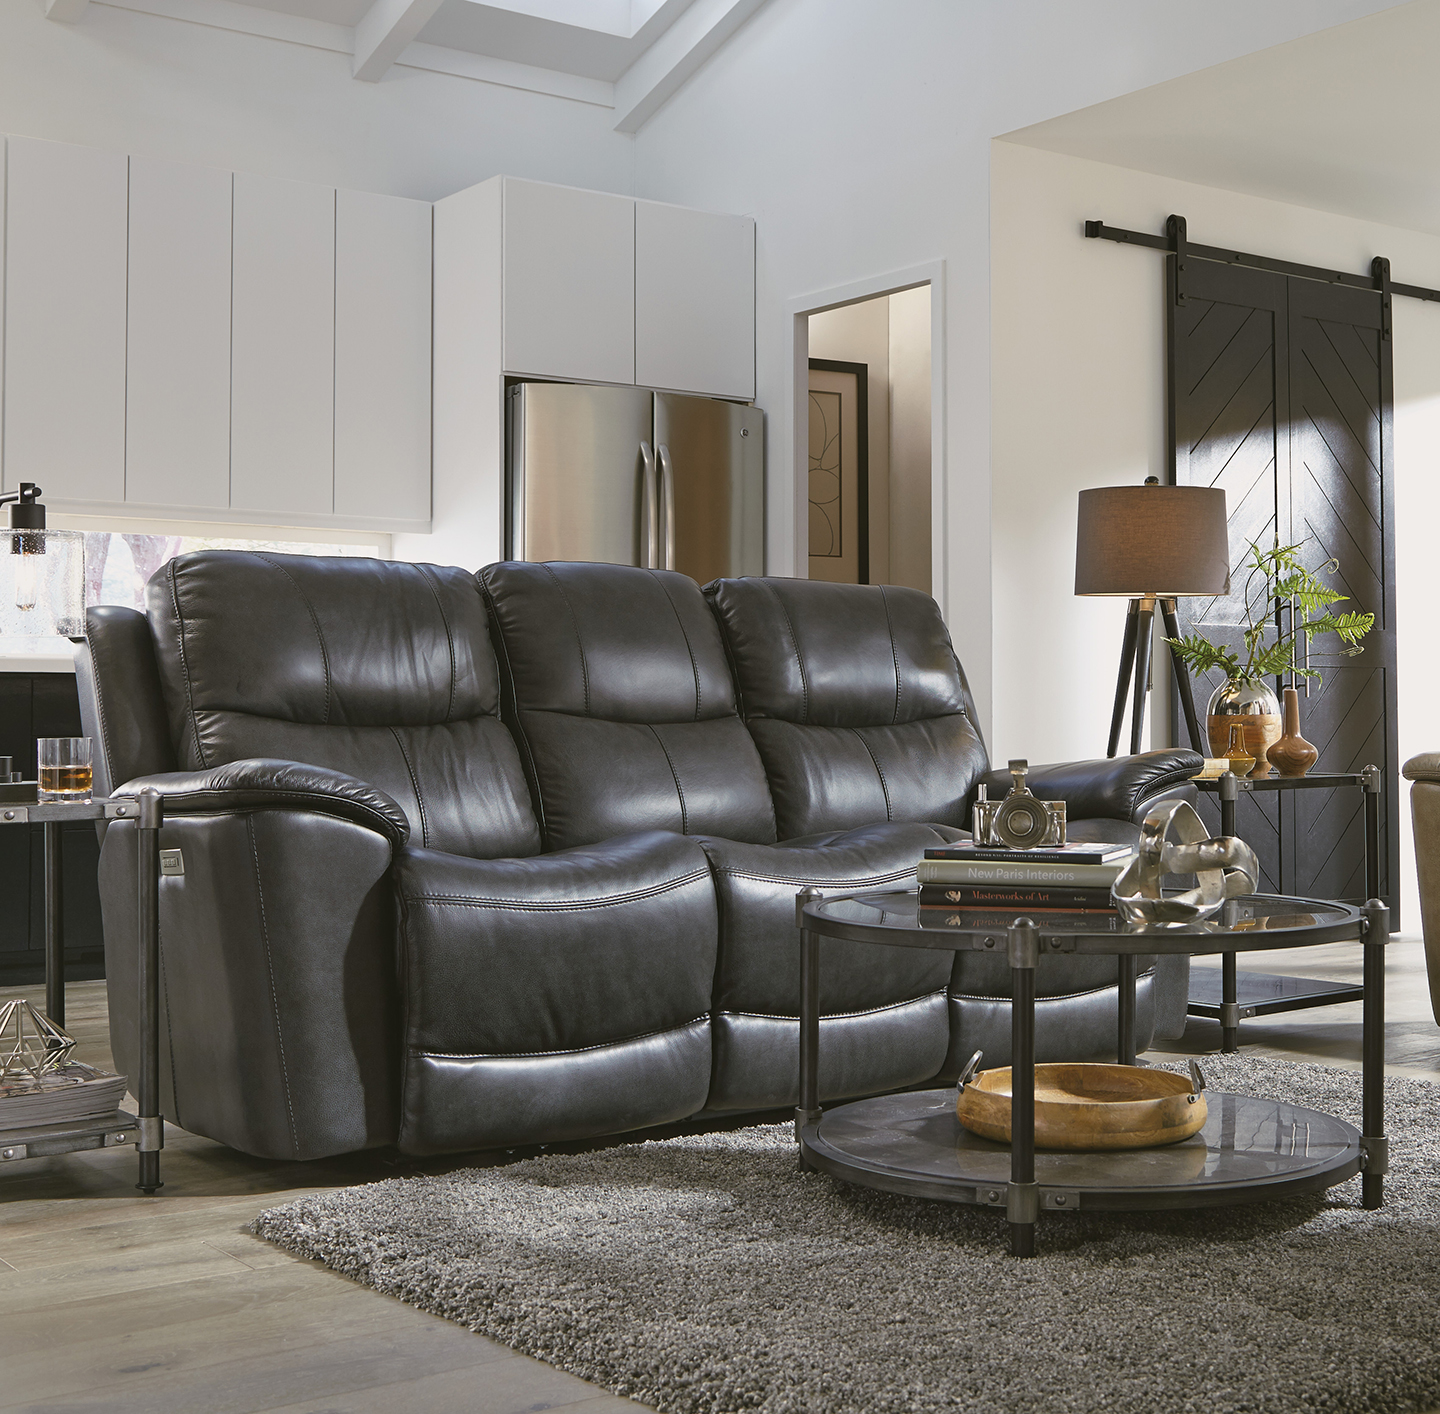 View Our Flexsteel Products Cury On Display At Furniture Plus Mesa Az